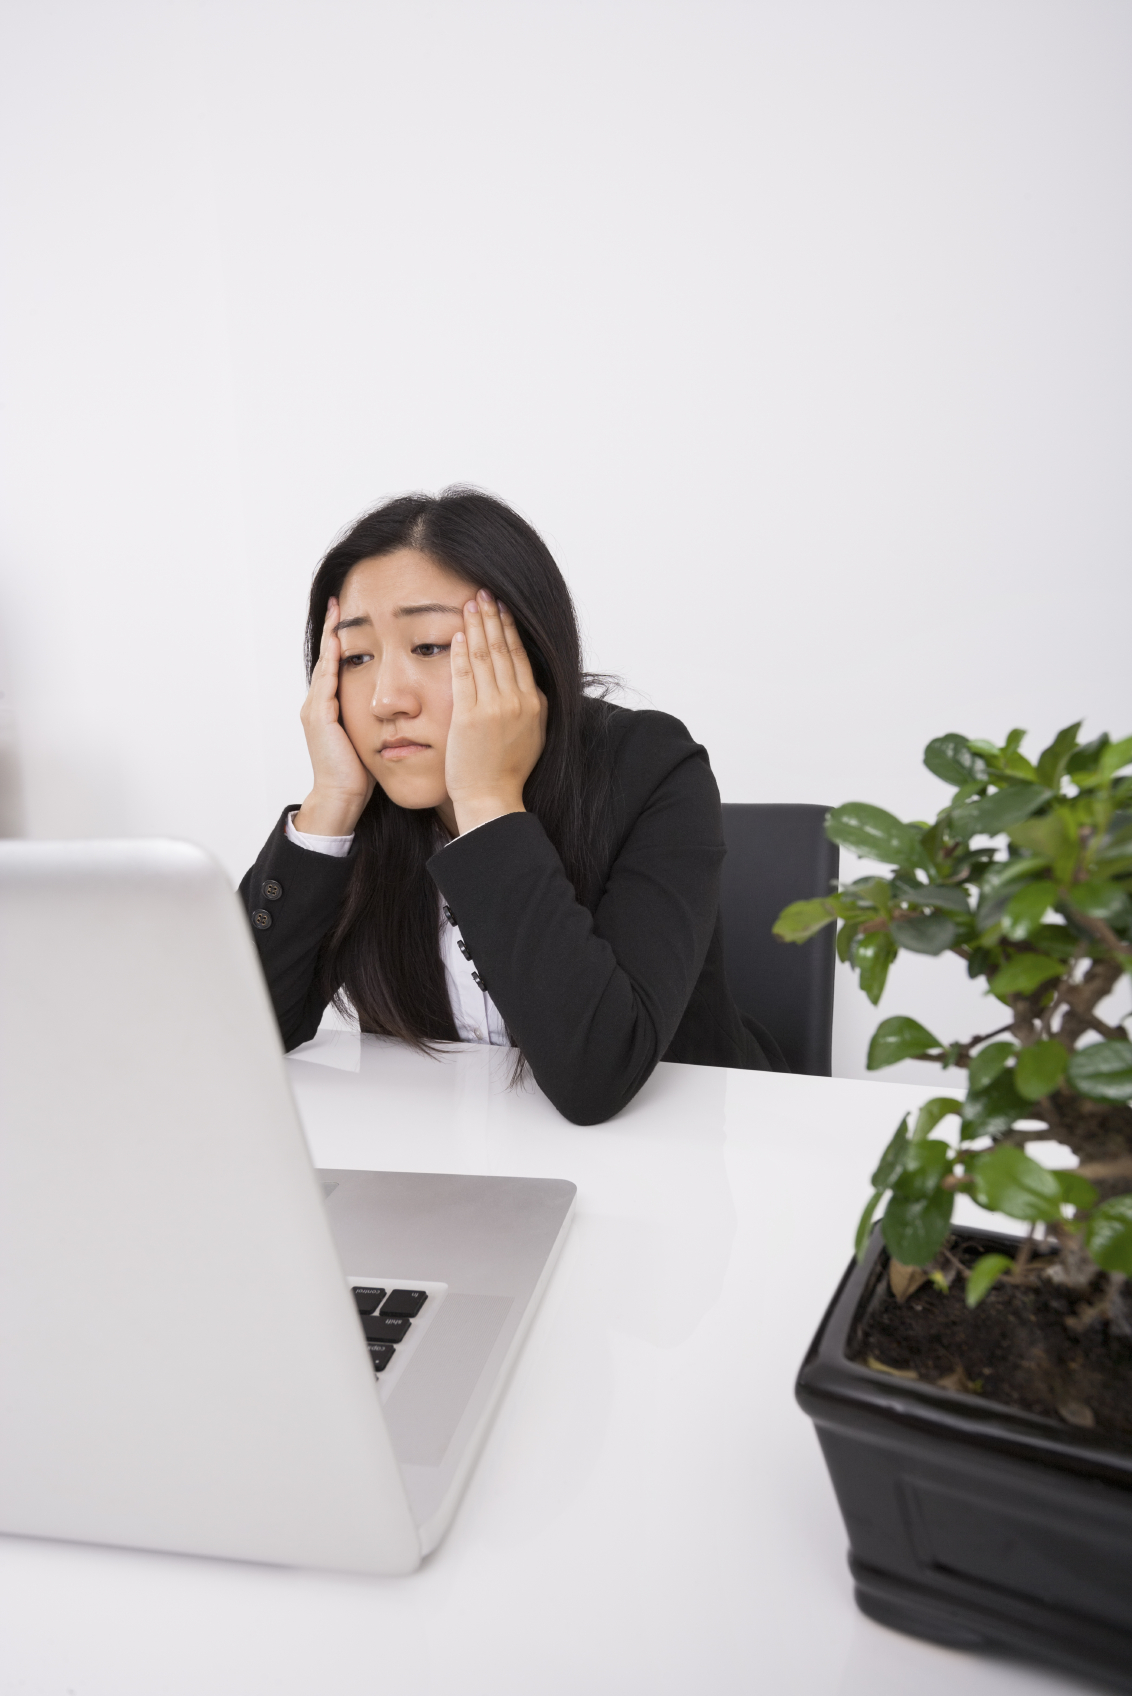 Stressed businesswoman looking at laptop in office